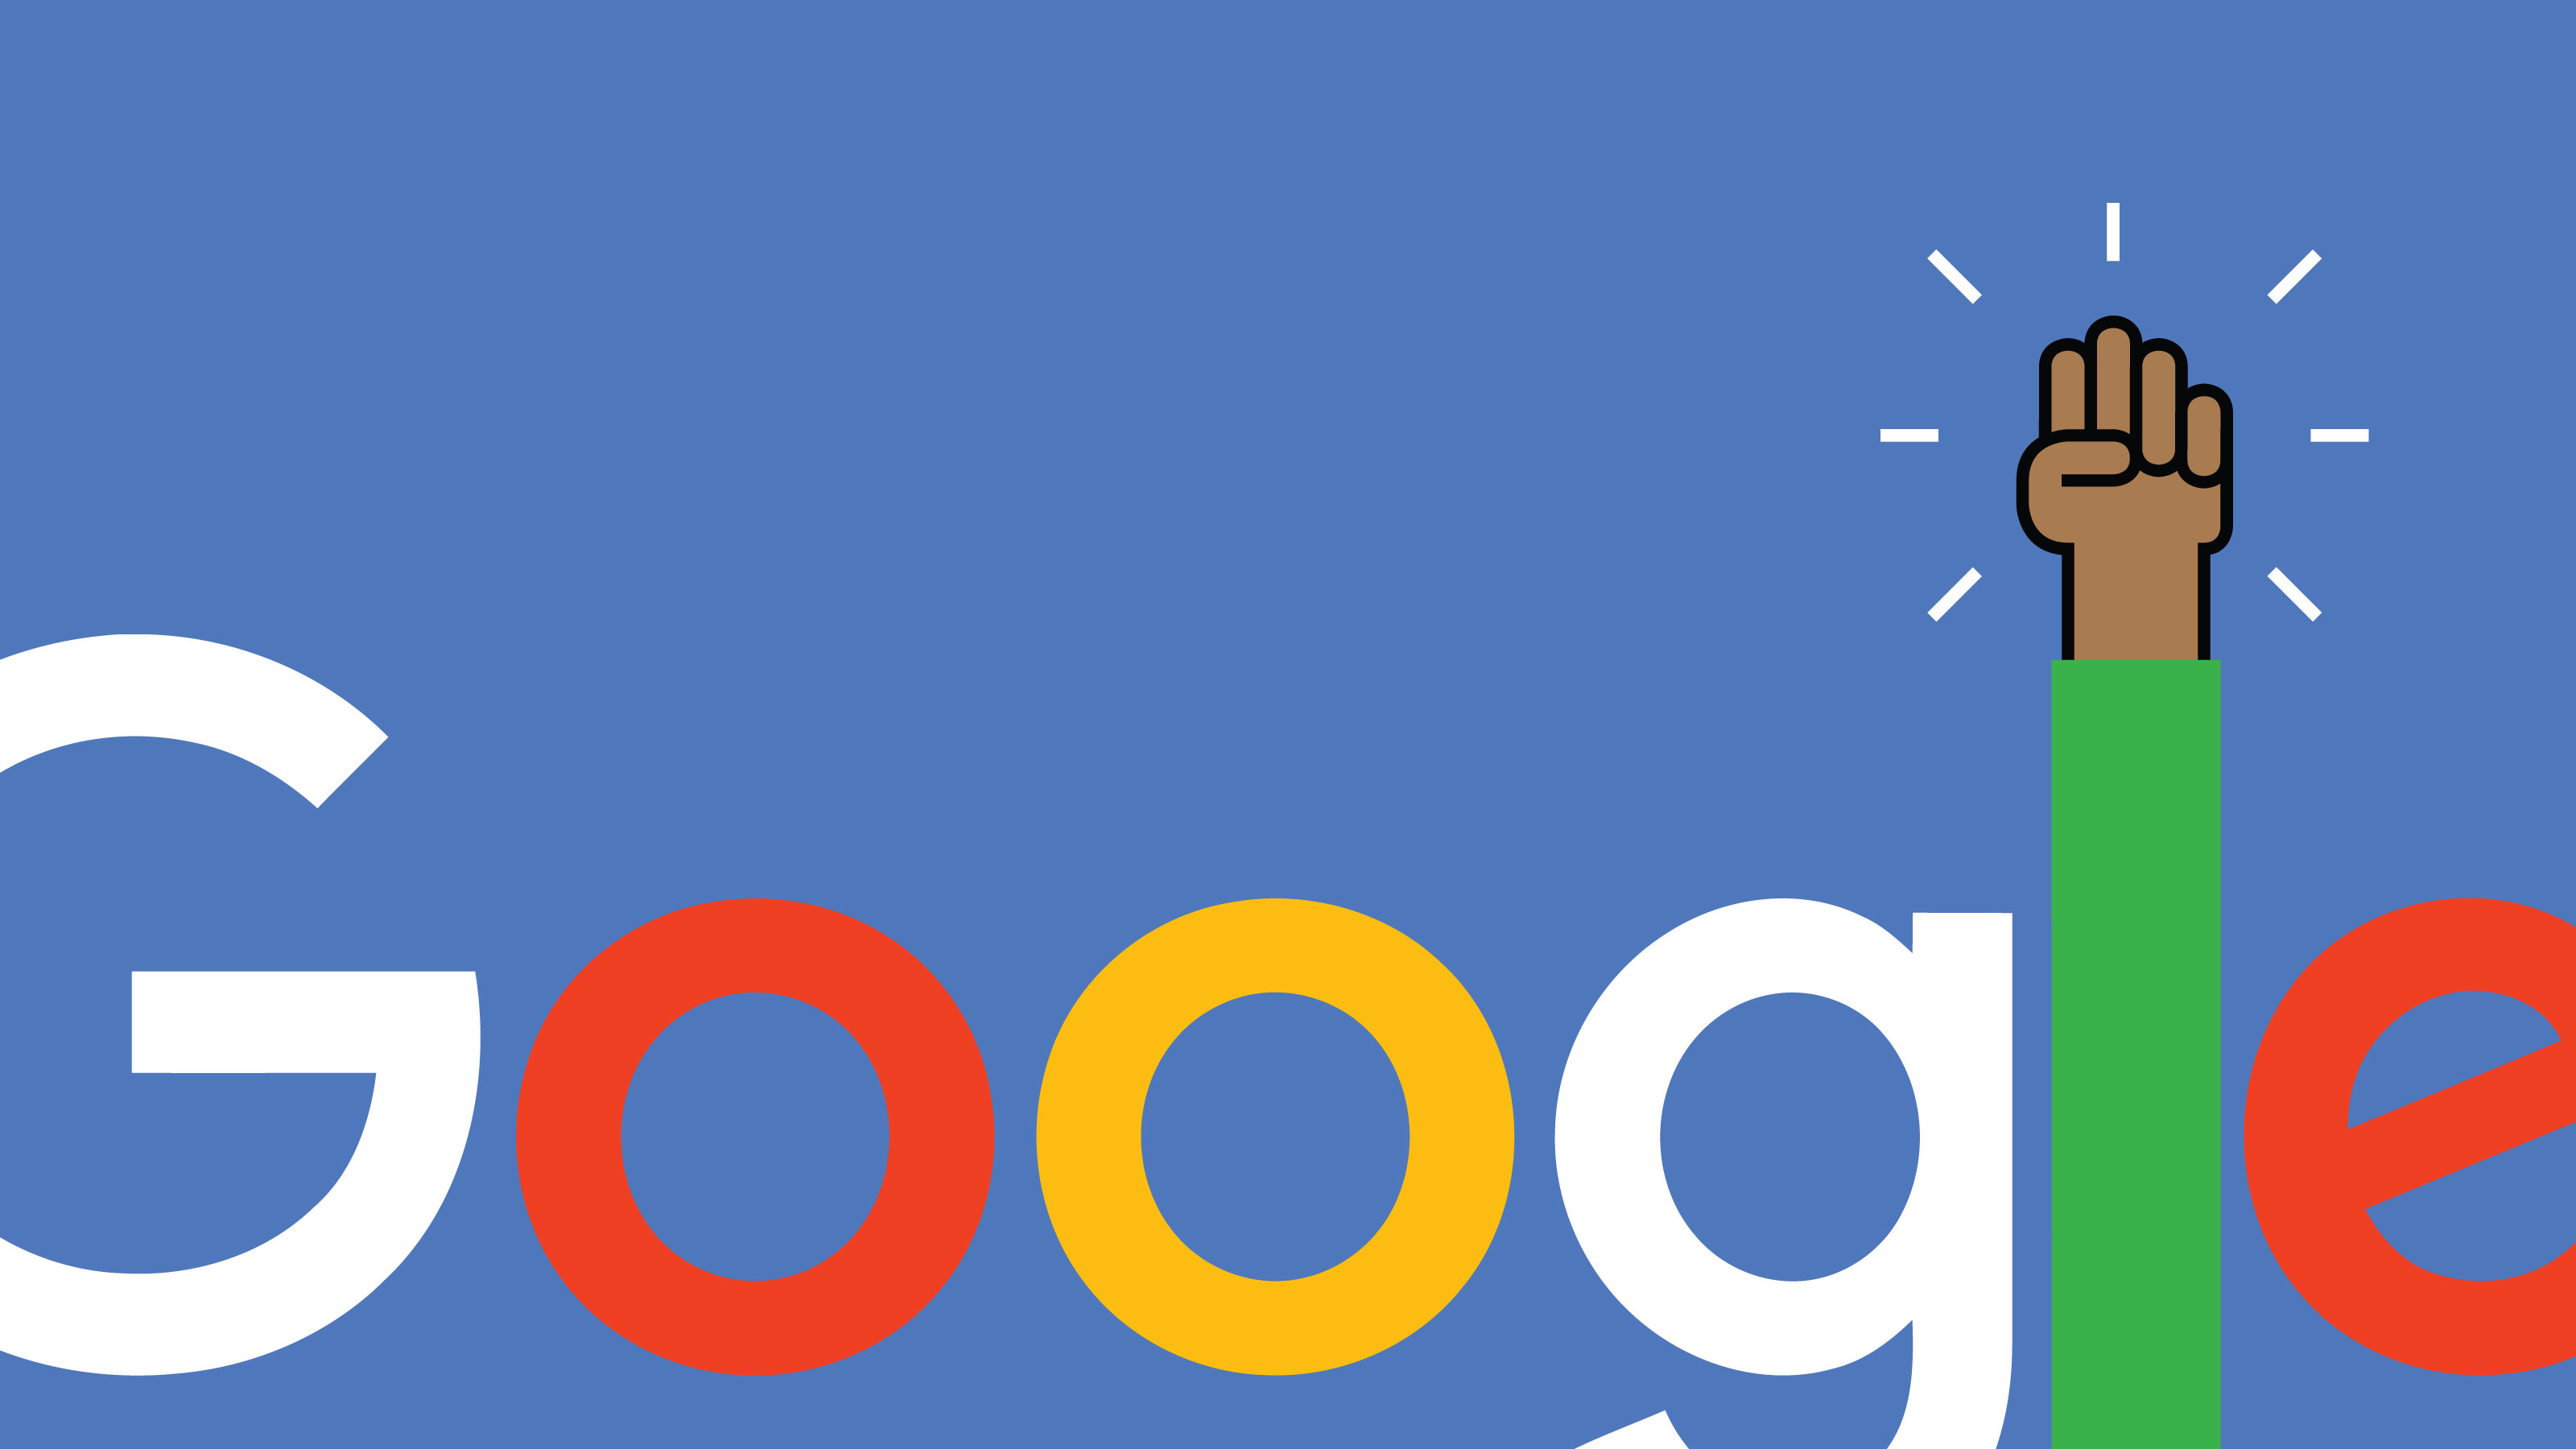 Illustration of Google logo with letter L as a raised arm/fist in the air